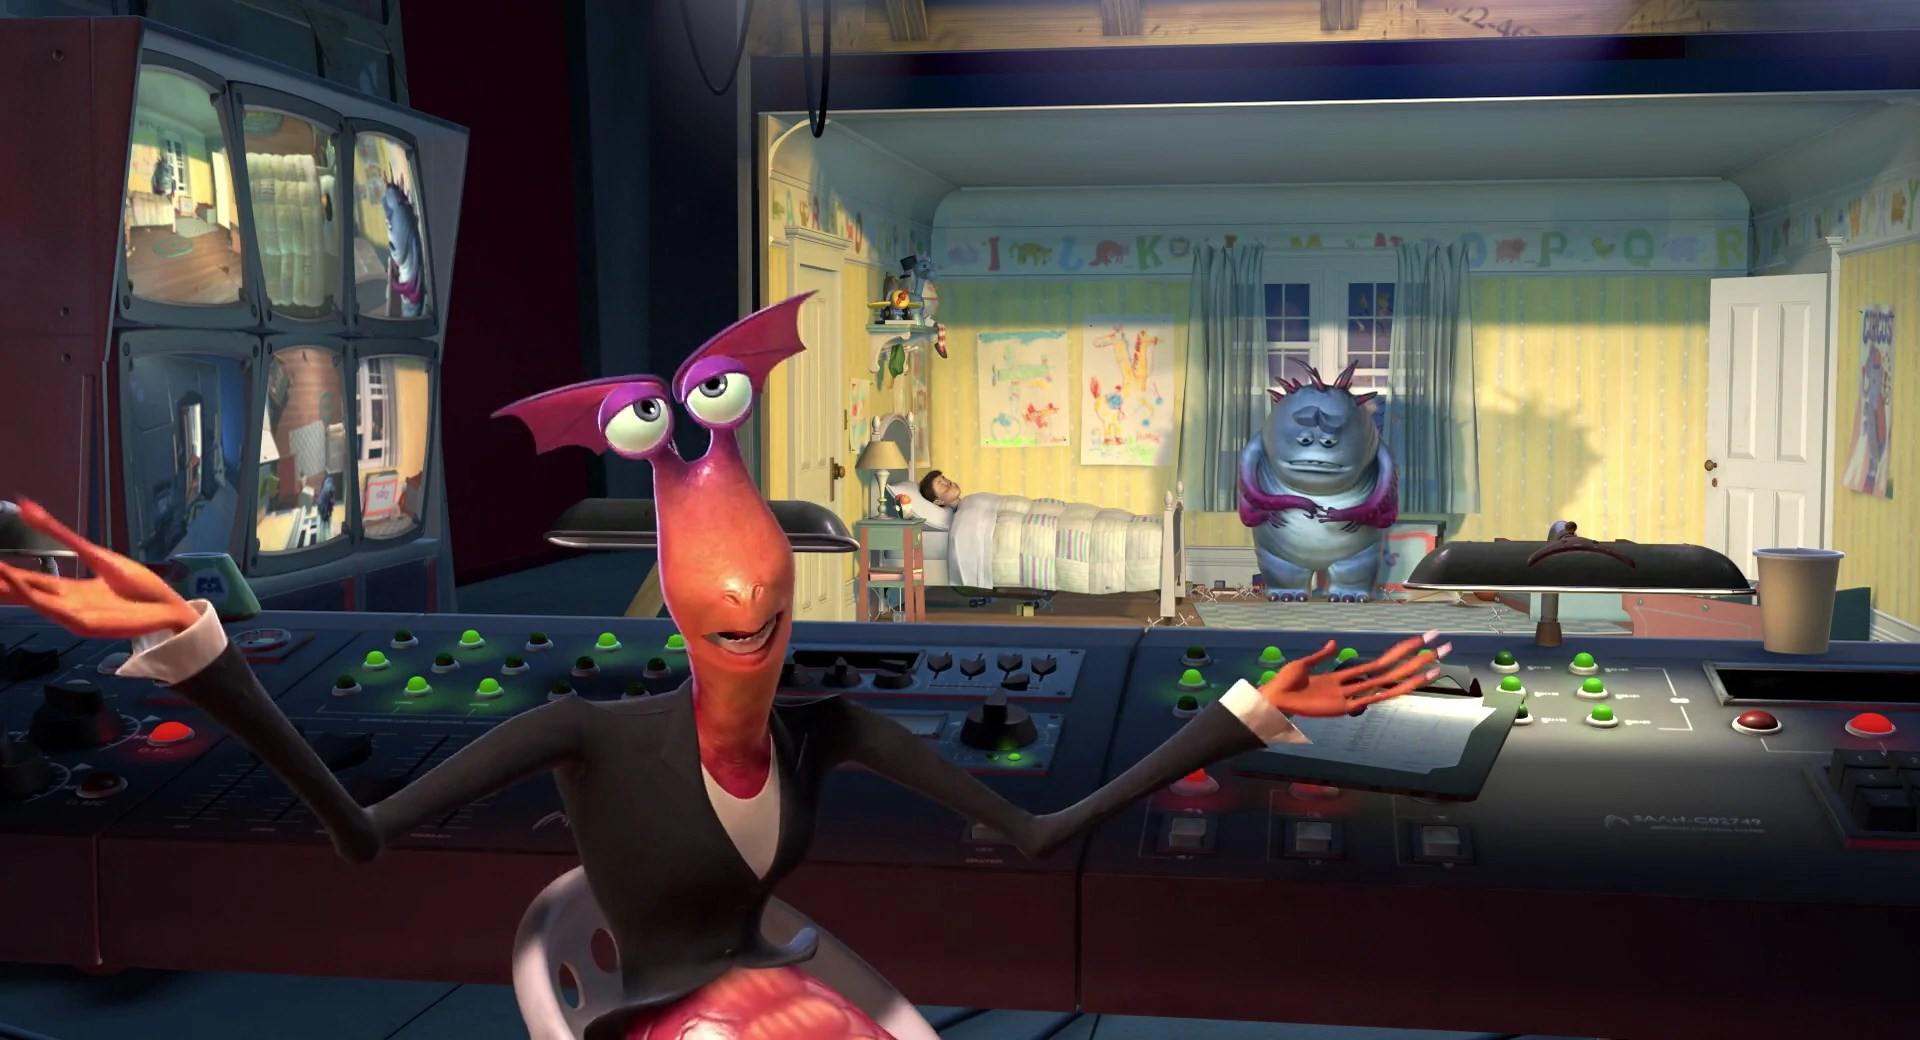 20+ Bile Monsters Inc Claws Ward Pictures and Ideas on Meta Networks